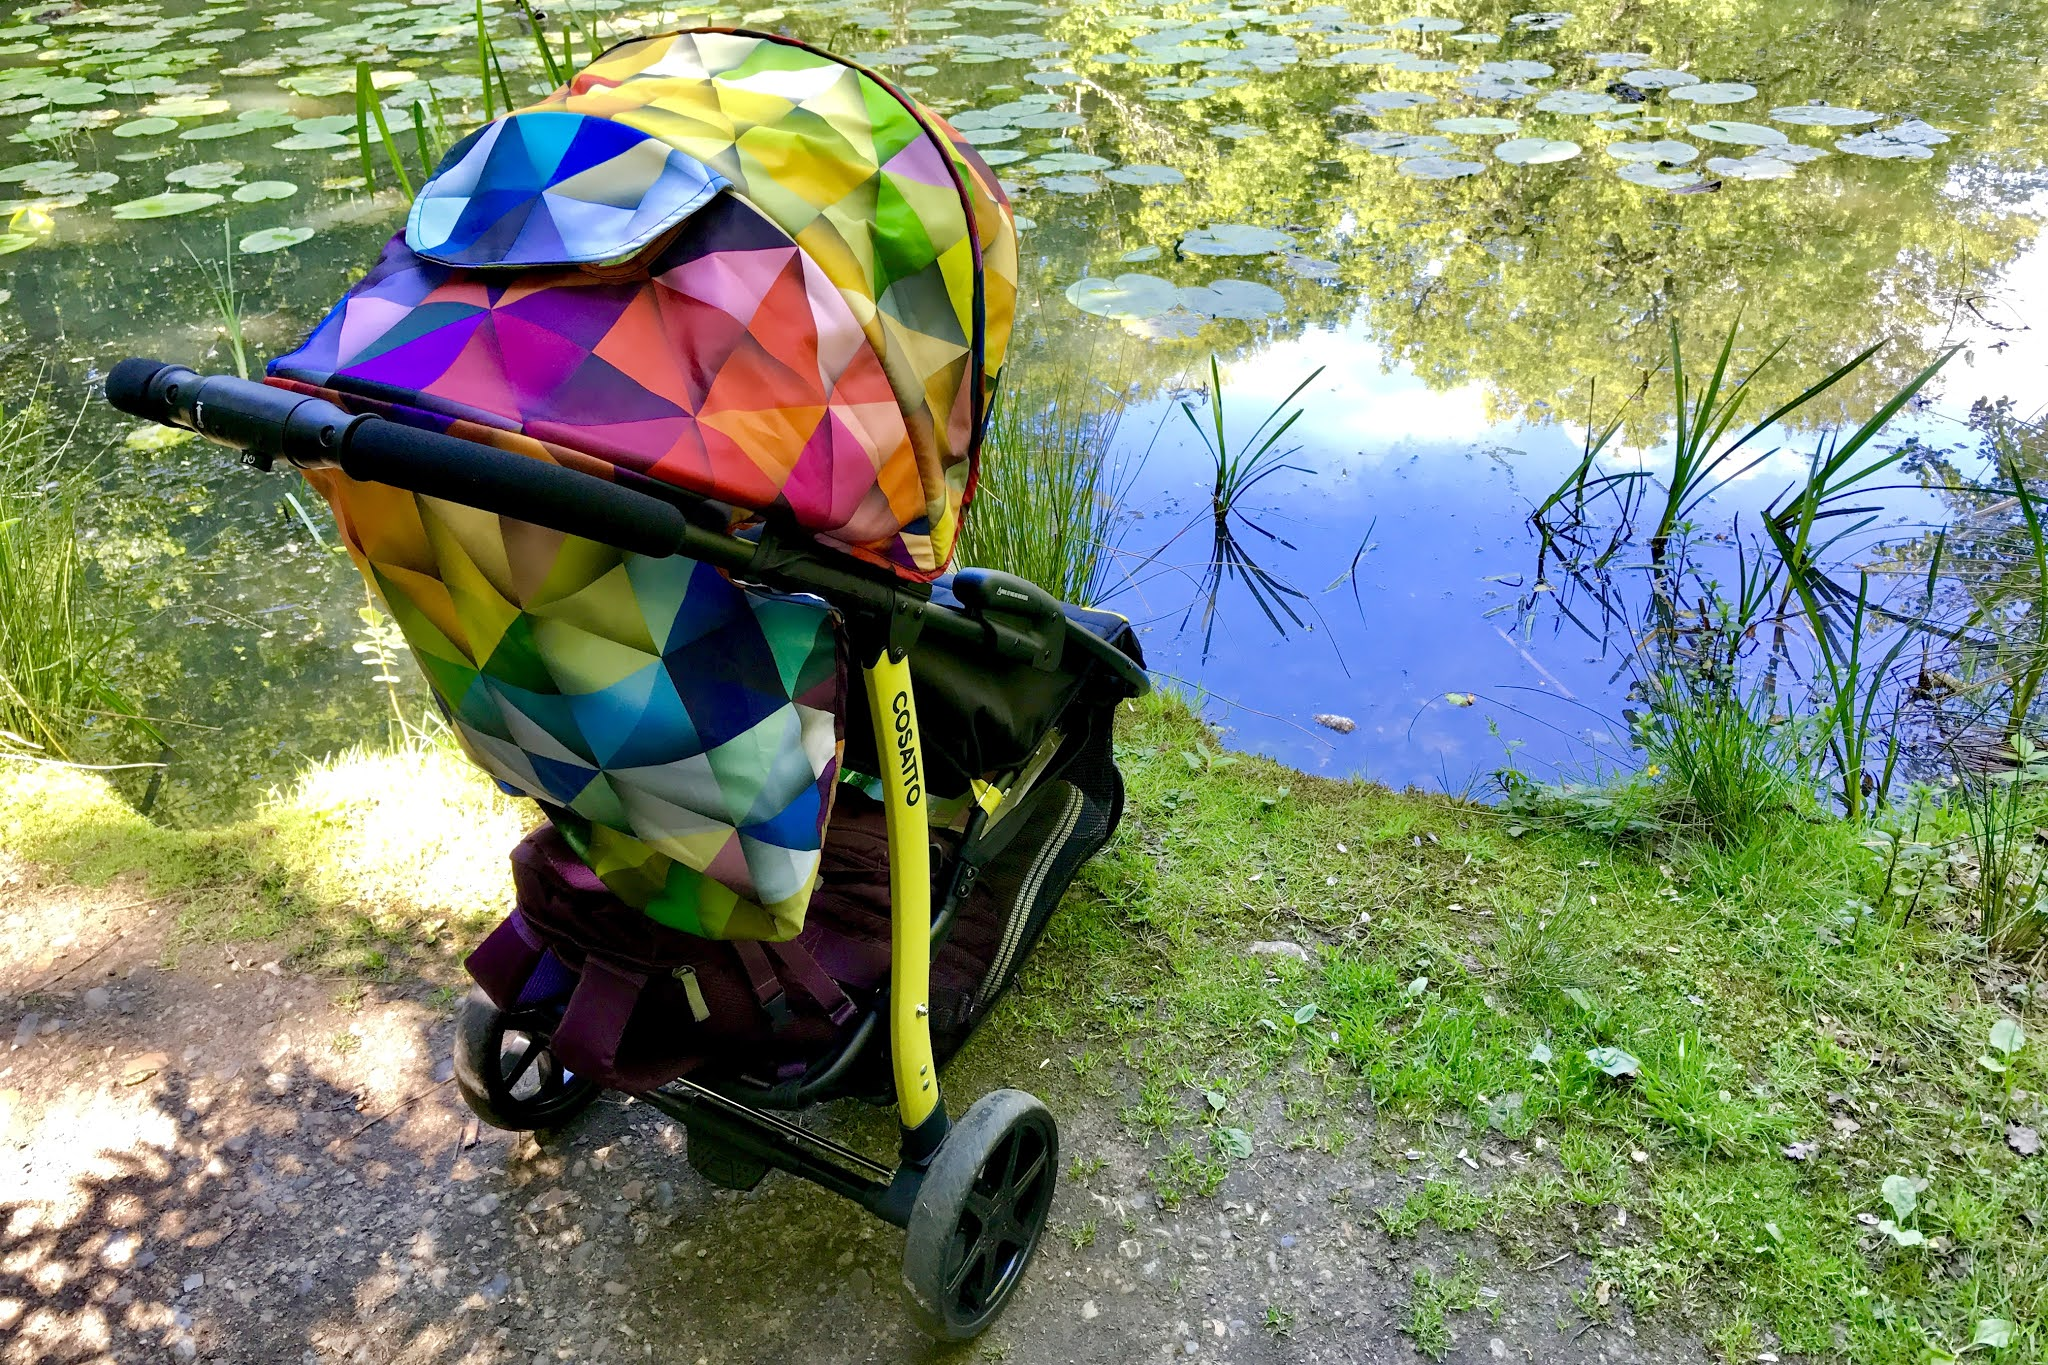 A fun and bright looking pushchair next to a pond with lilypads